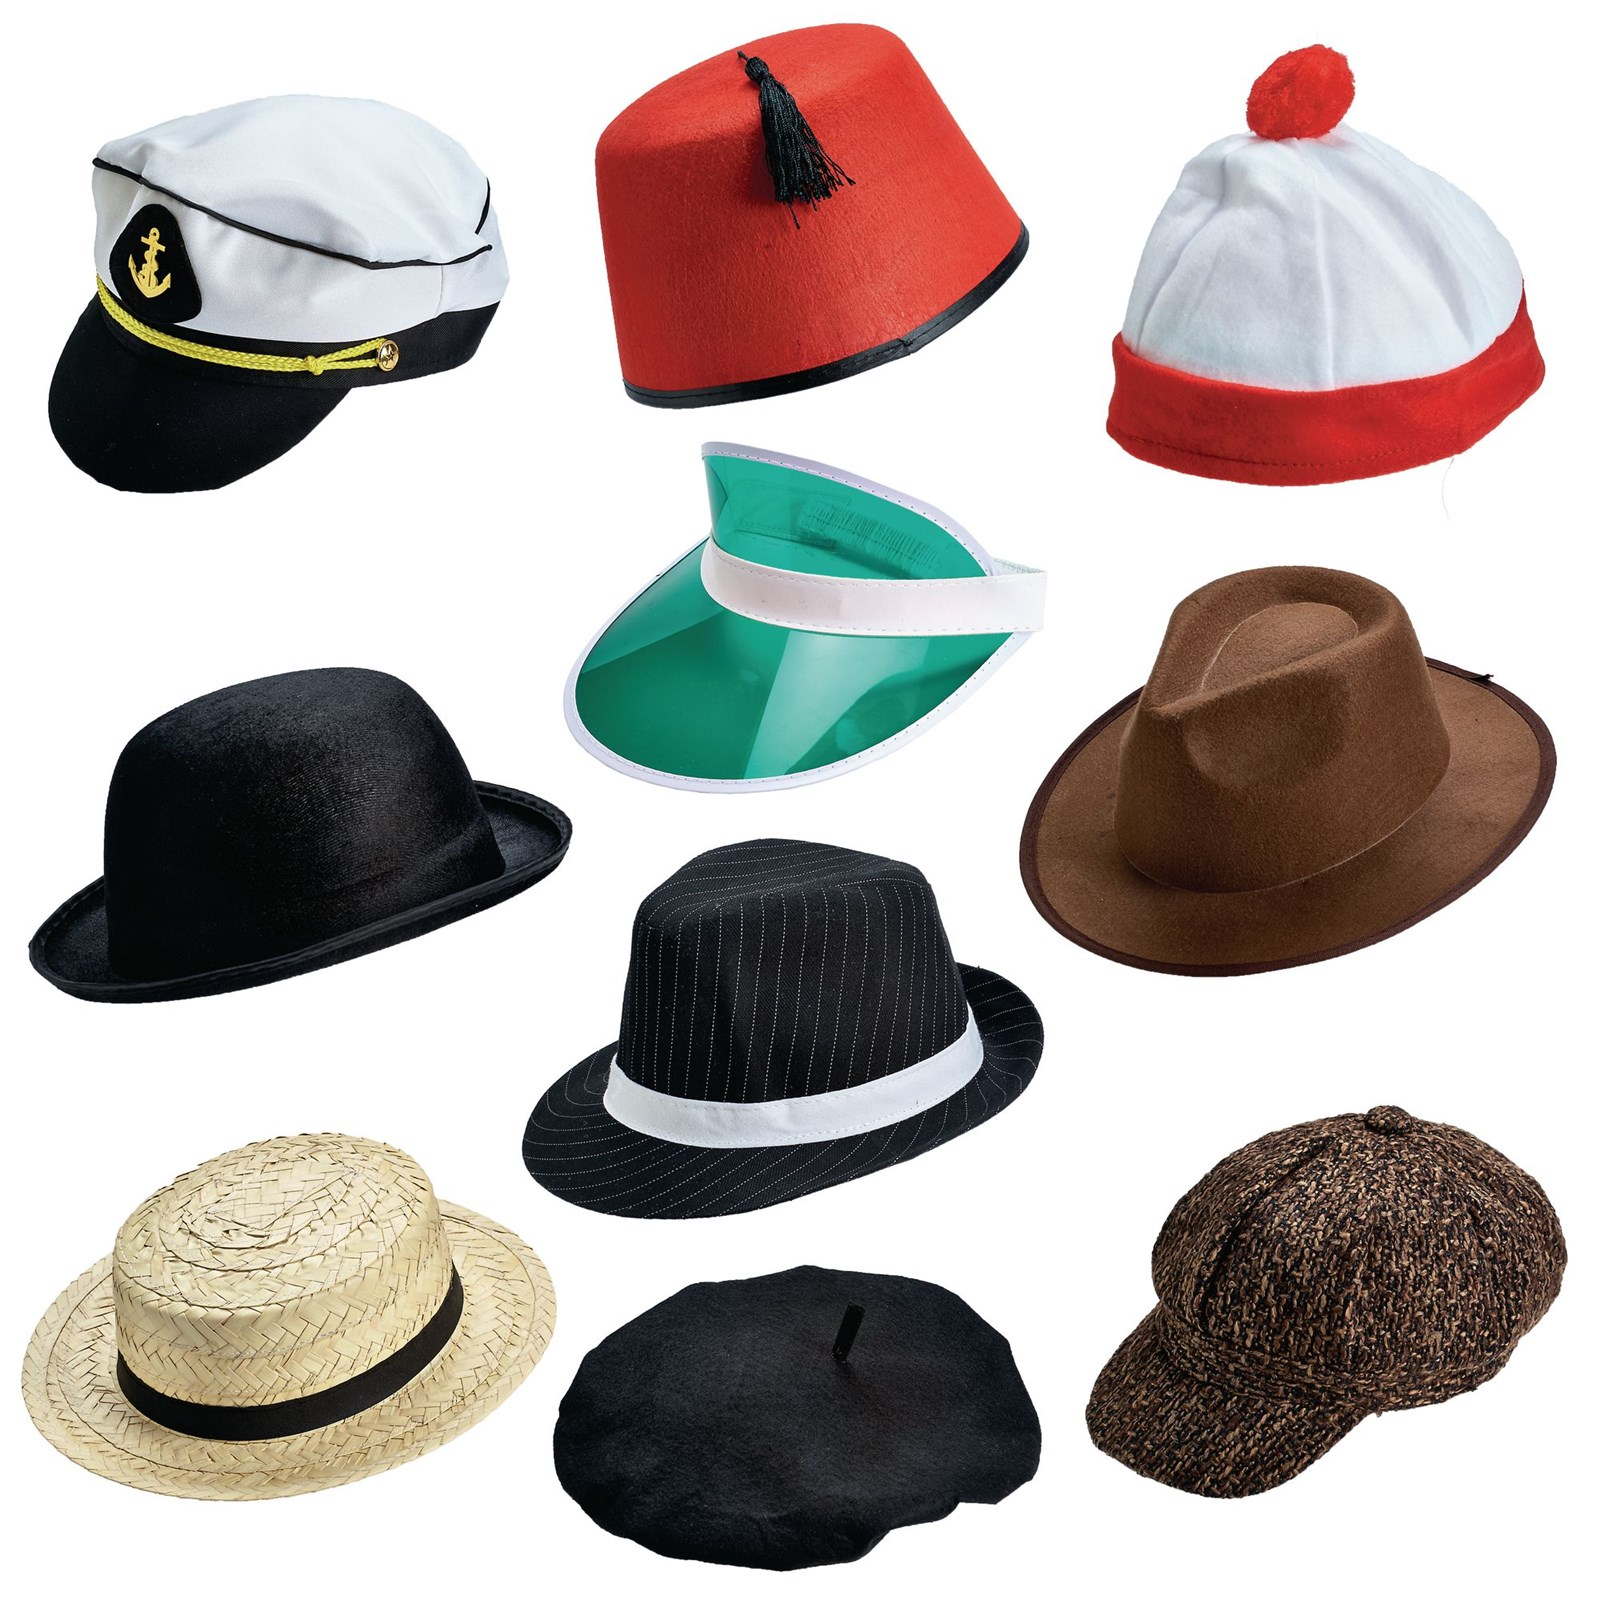 Fun Hats and Accessories